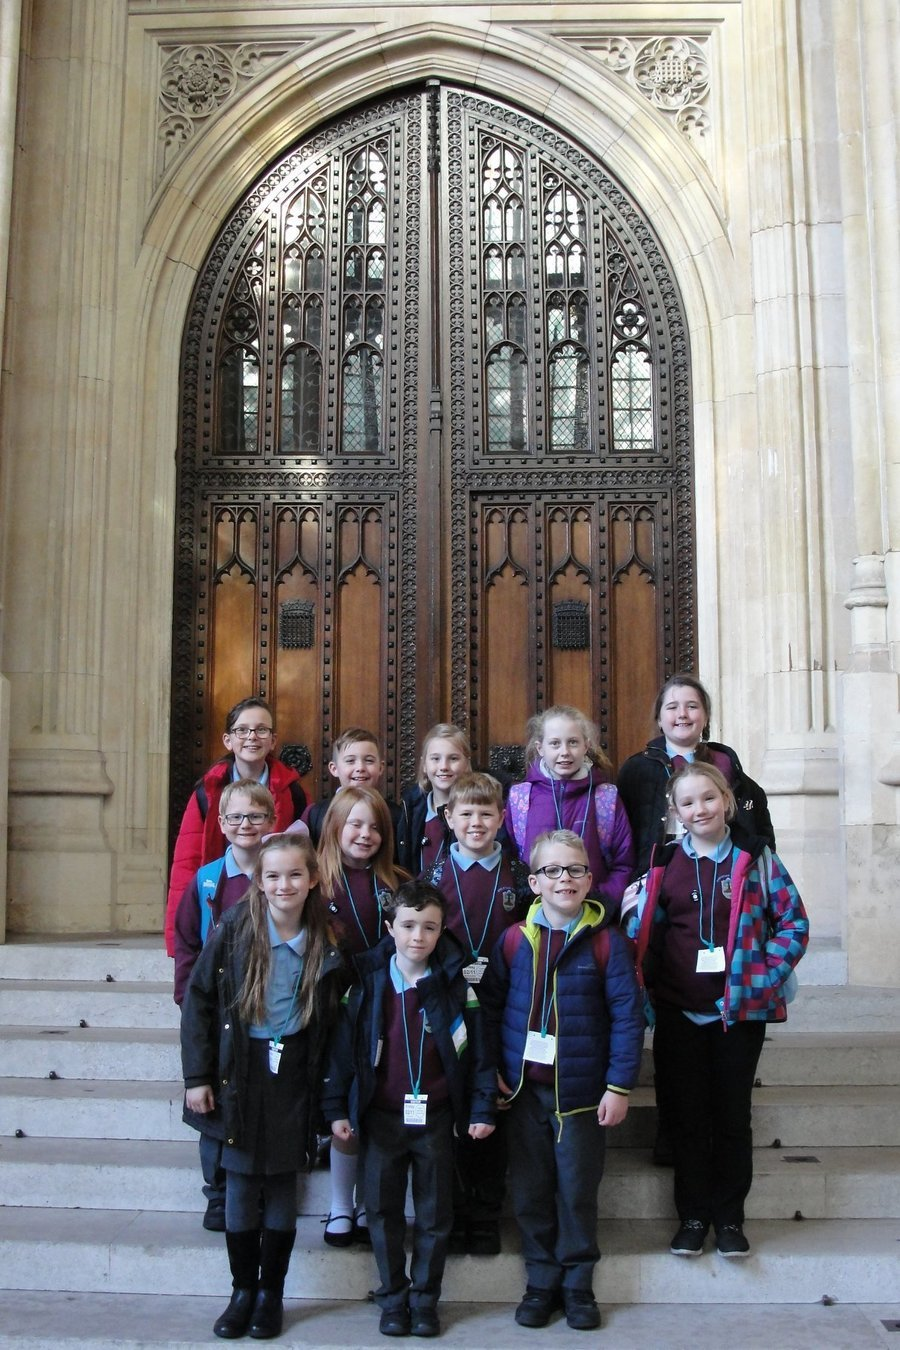 The children in Key Stage Two had a fantastic day in London visiting the Houses of Parliament. We visited the 'Robing Room', the House of Commons, House of Lords and the original Westminster Hall. We are all really looking forward to developing our knowledge in our upcoming Parliament Week (12- 16th November )where we will be exploring how the suffragettes changed womens right to vote.